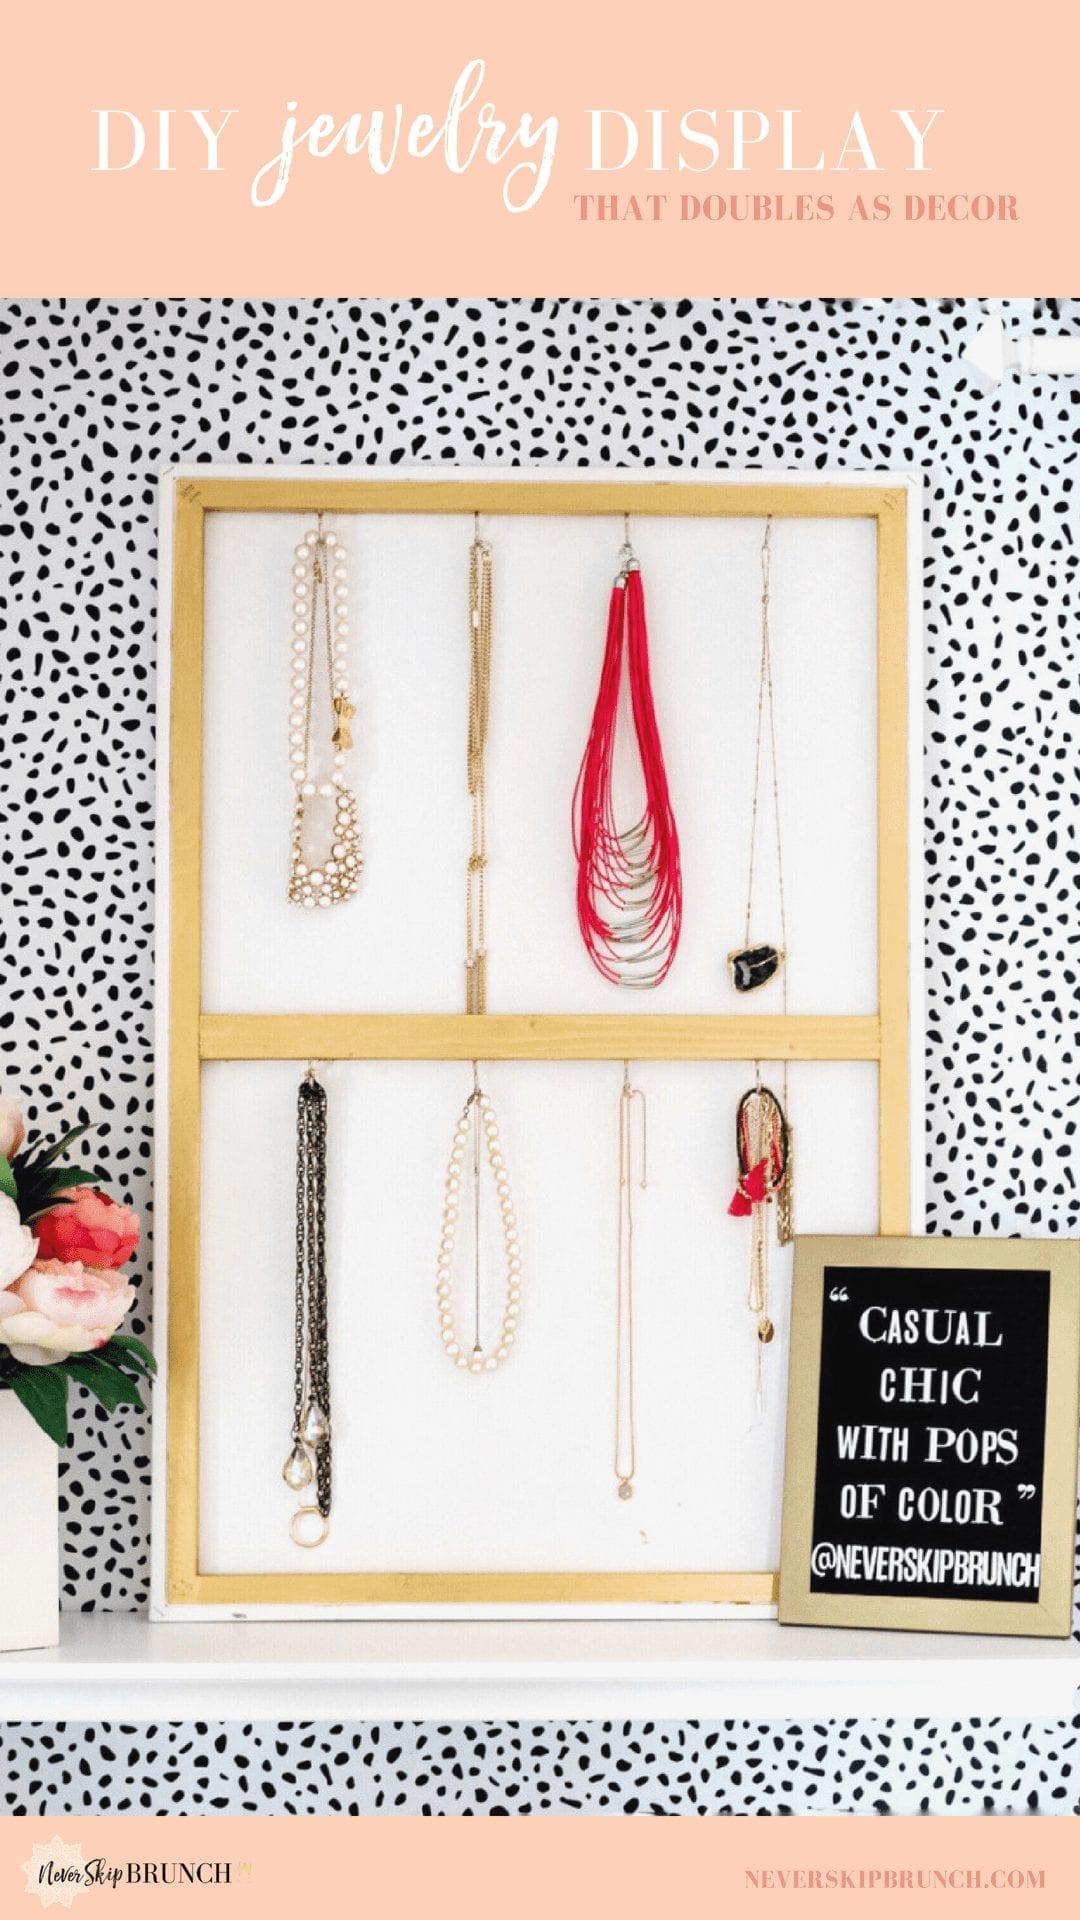 easy diy jewelry holder for wall | diy jewelry holder wall | necklace holder diy wall | Never Skip Brunch by Cara Newhart #diy #jewelry #neverskipbrunch